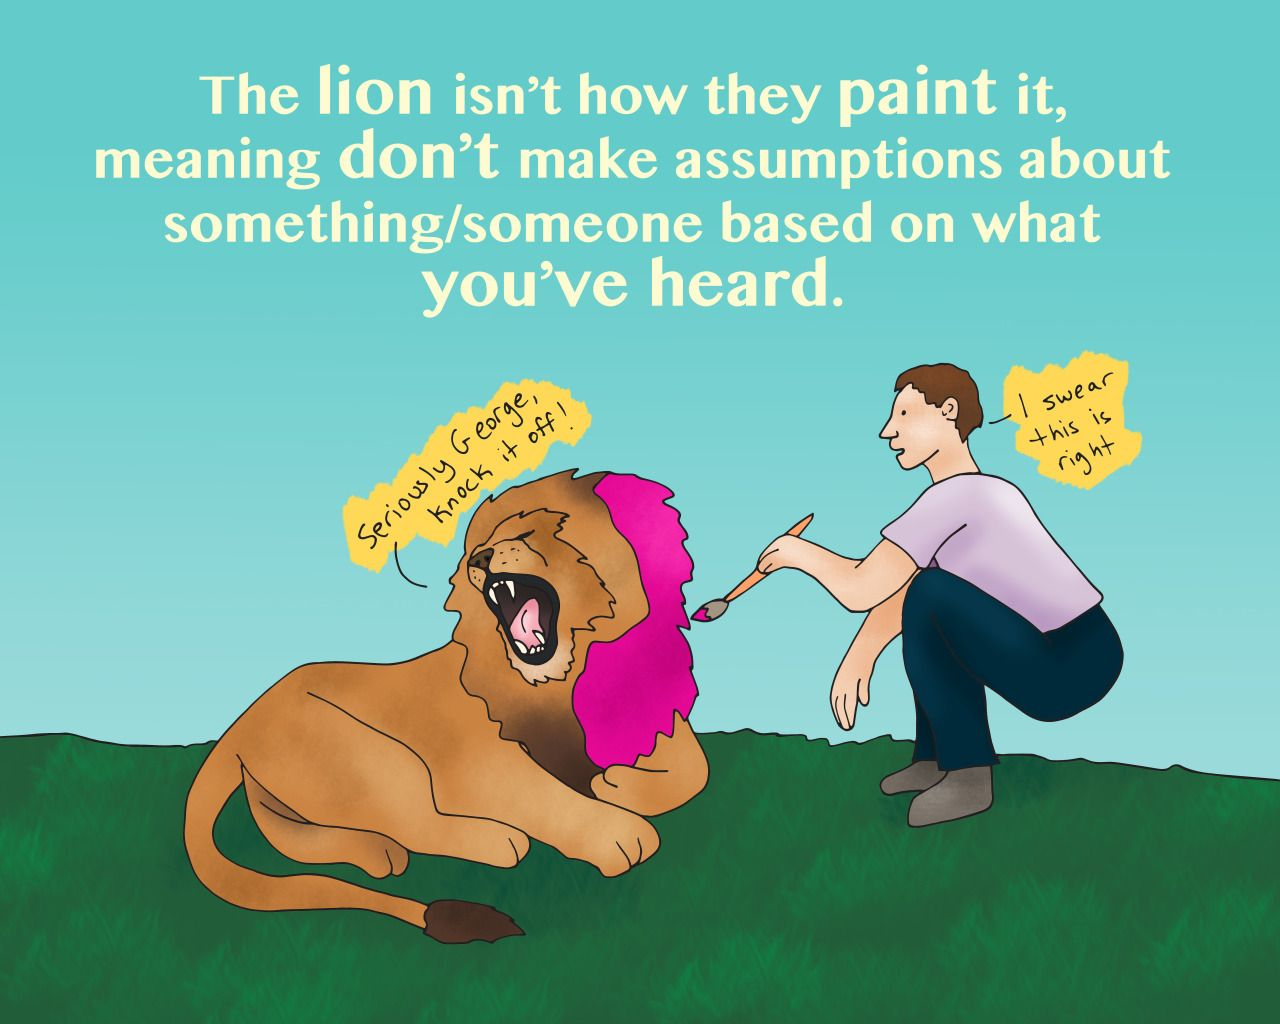 El león no es cómo lo pintan. Translation: The lion isn't how they paint it, meaning don't make assumptions about something/someone based on what you've heard. Example: I know there's rumors around...